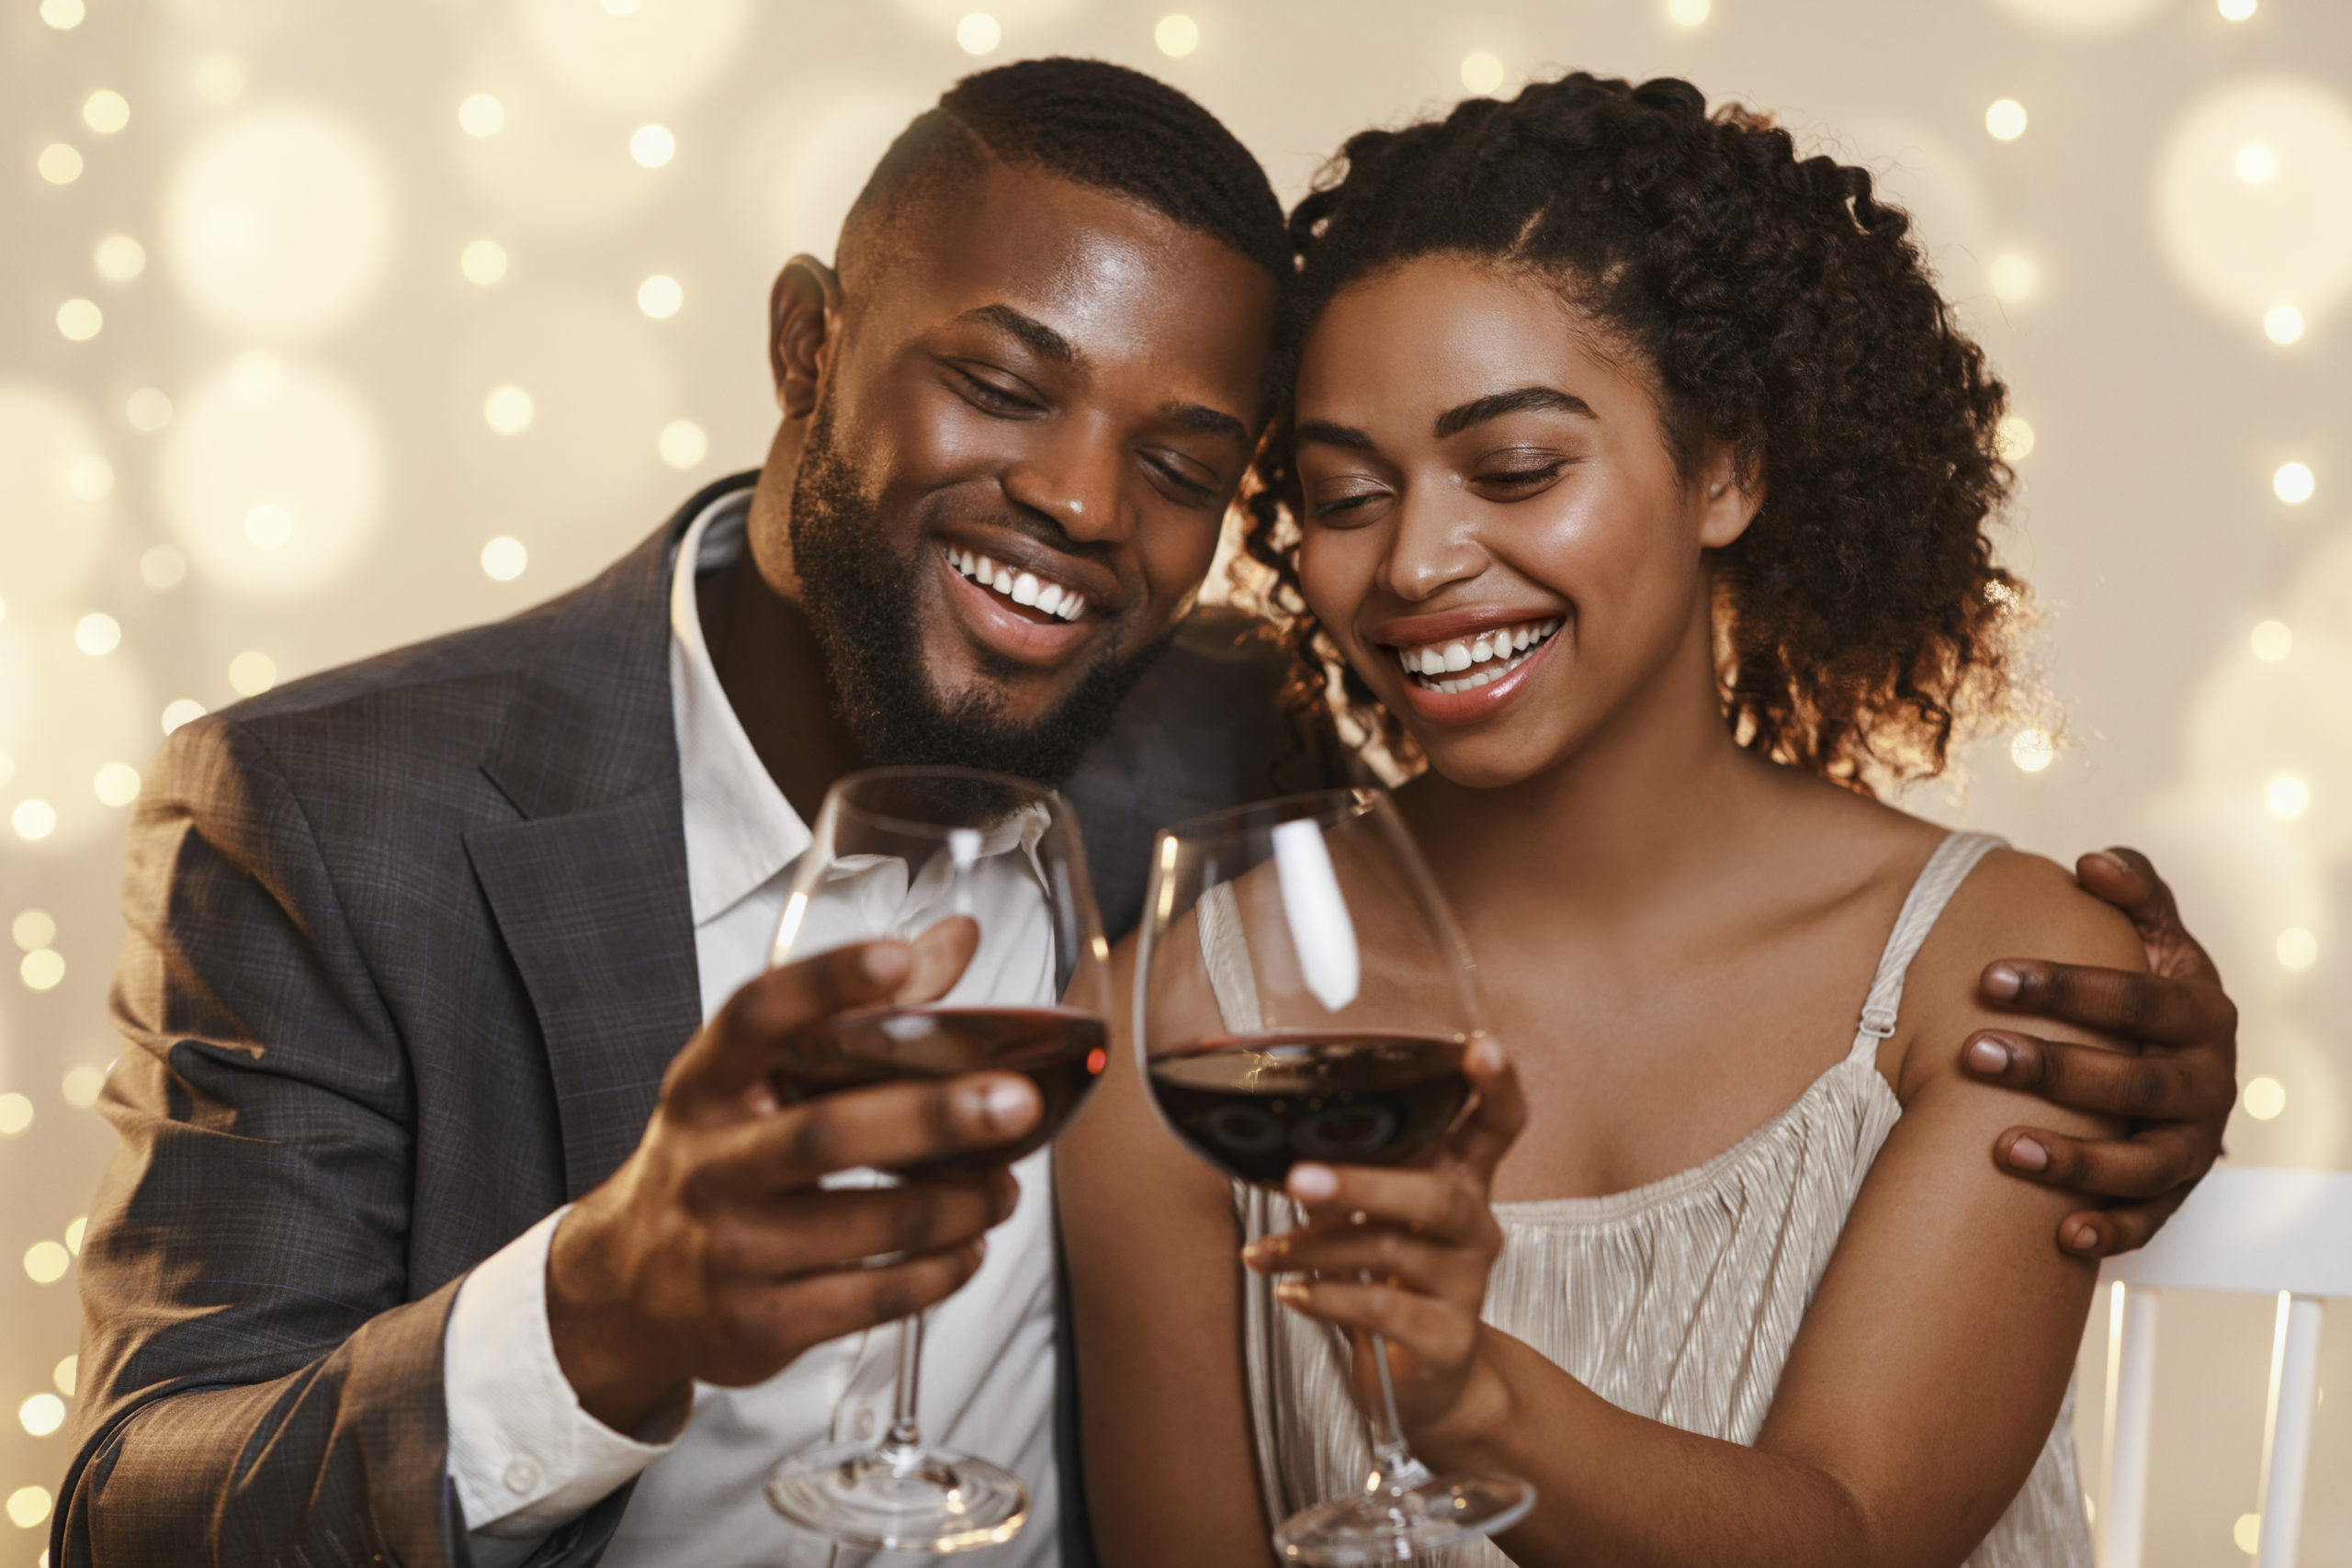 5 tips on dating successfully during a pandemic